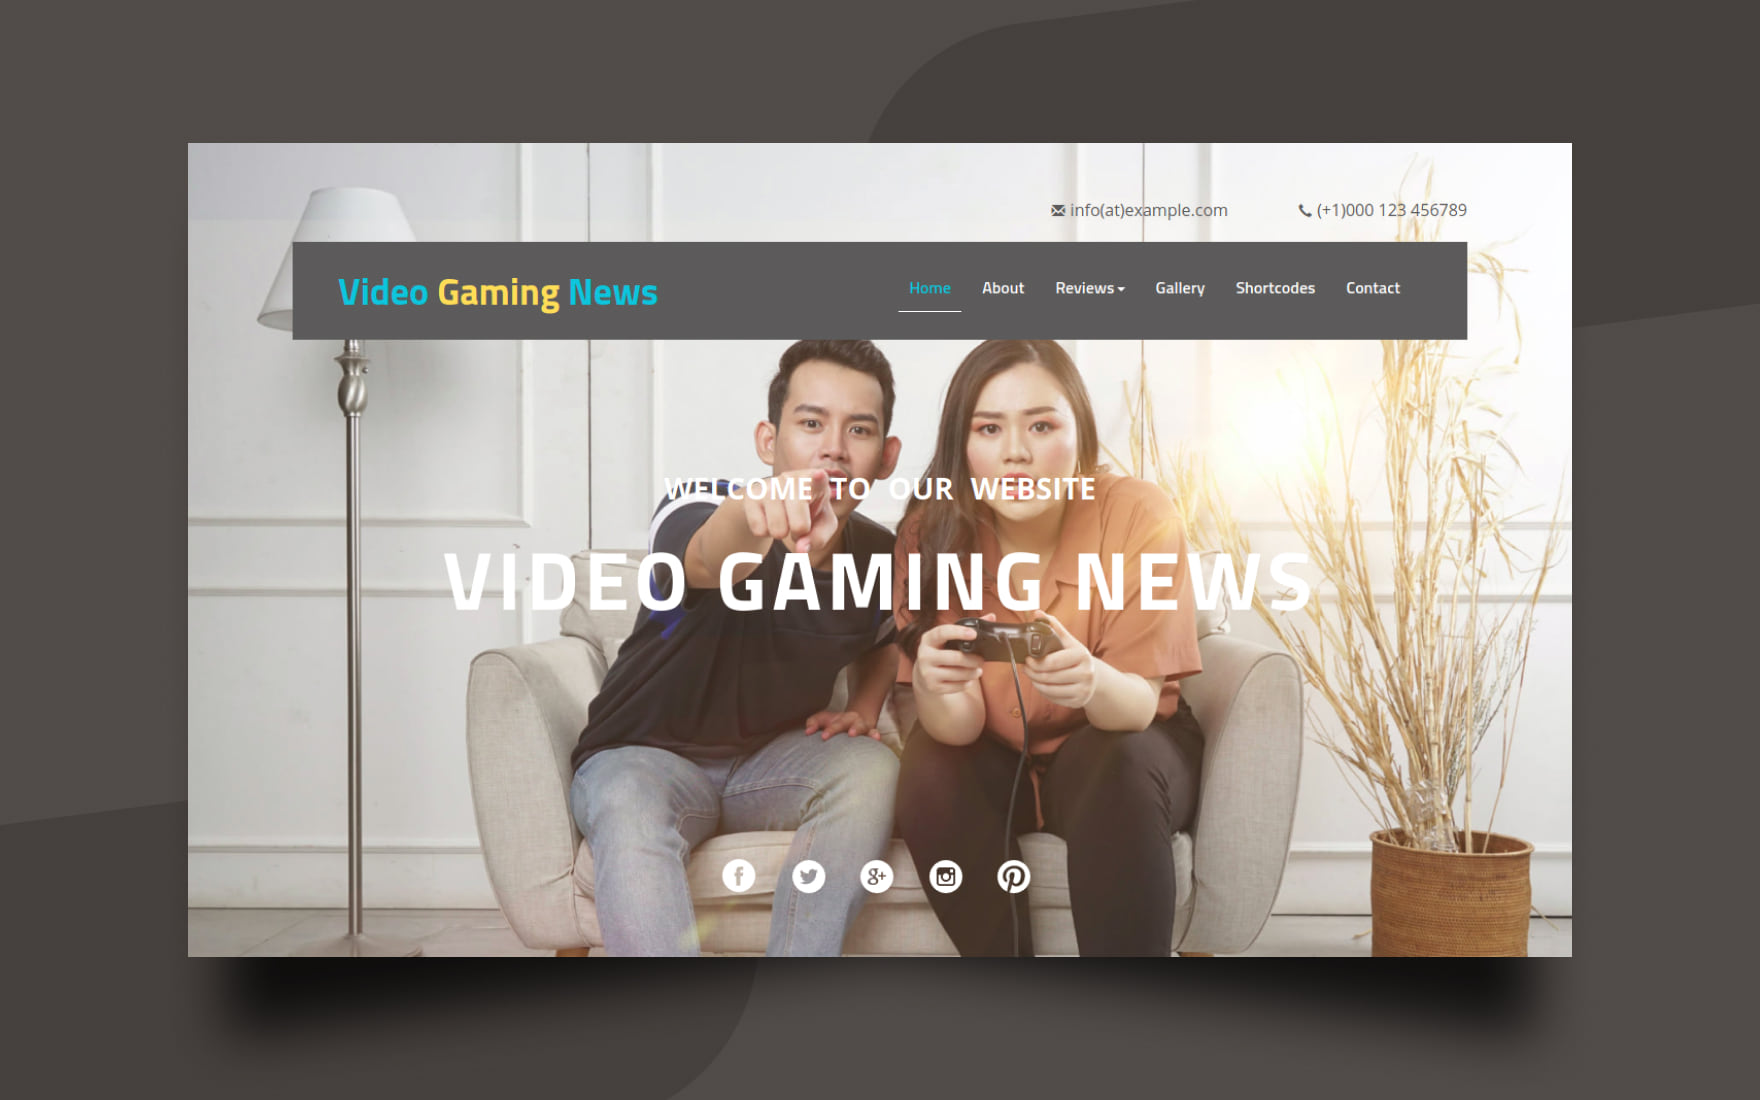 Video Gaming News Website Template